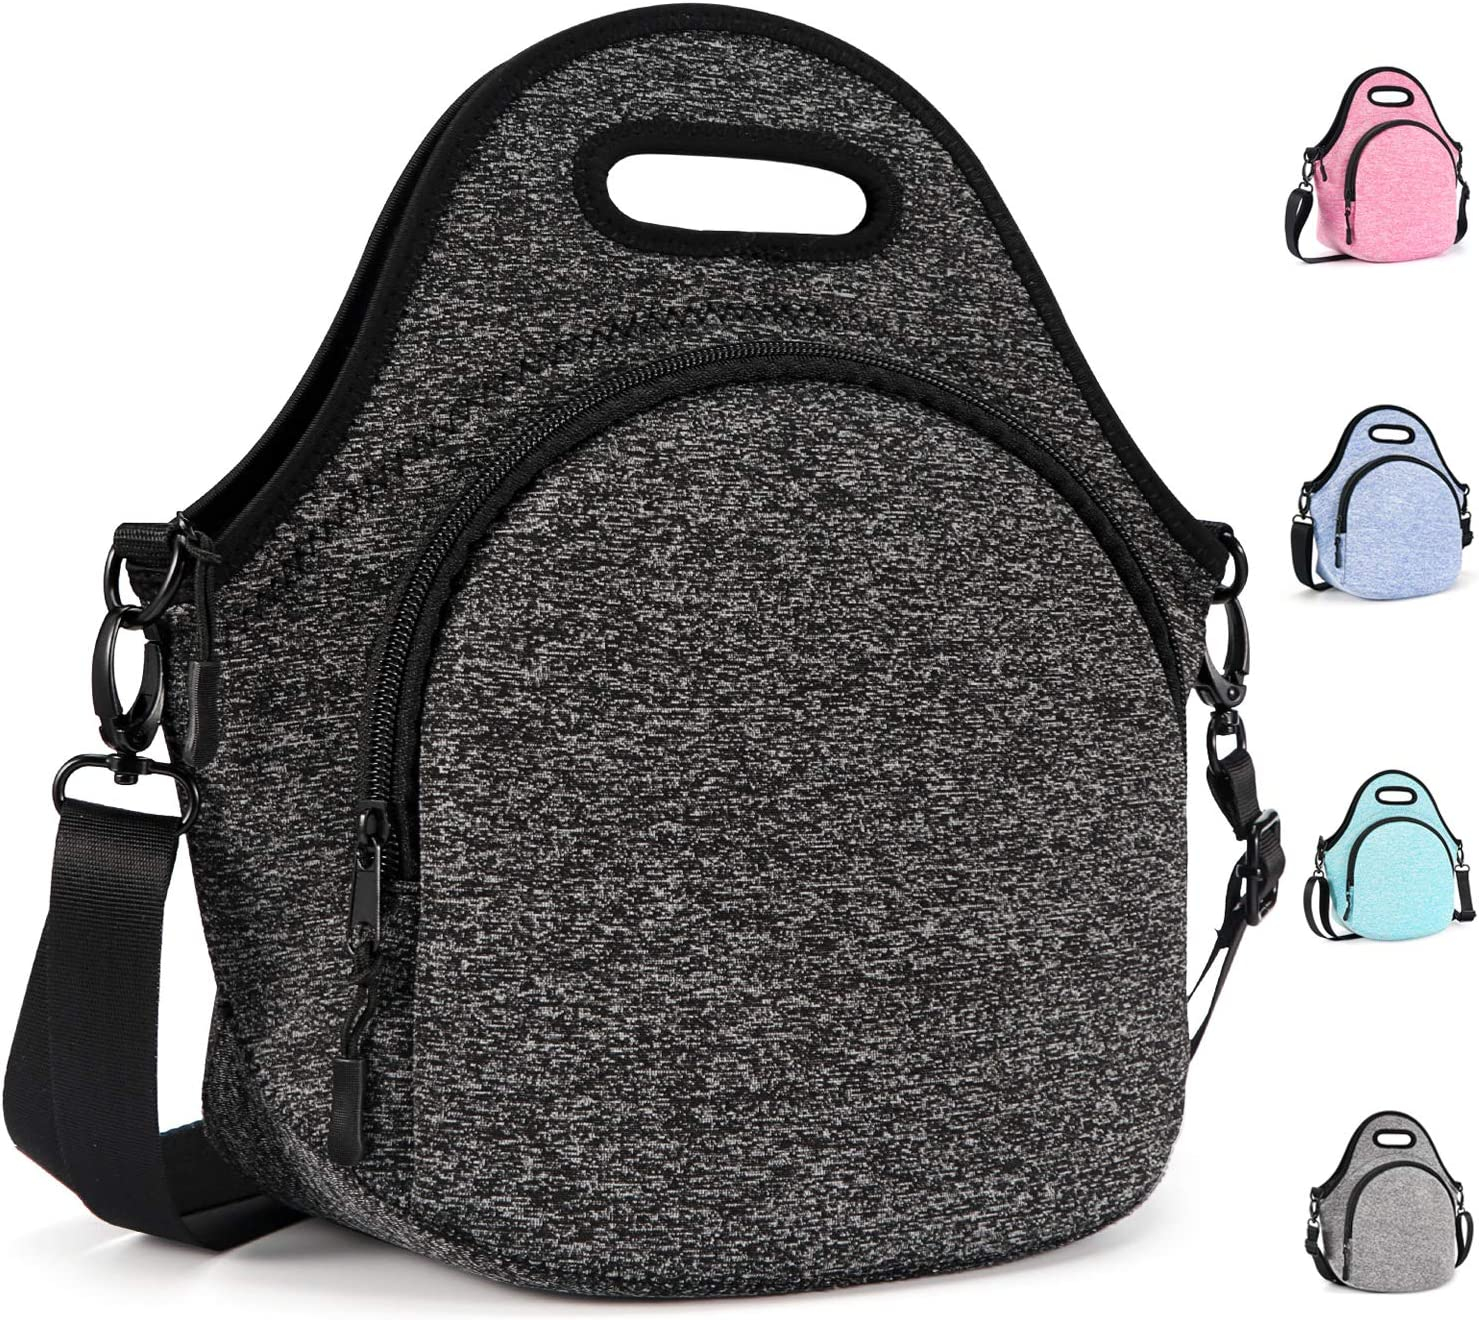 Safety and trust 5% OFF Gowraps Lunch Bags For Women Kids Neoprene Tote Men